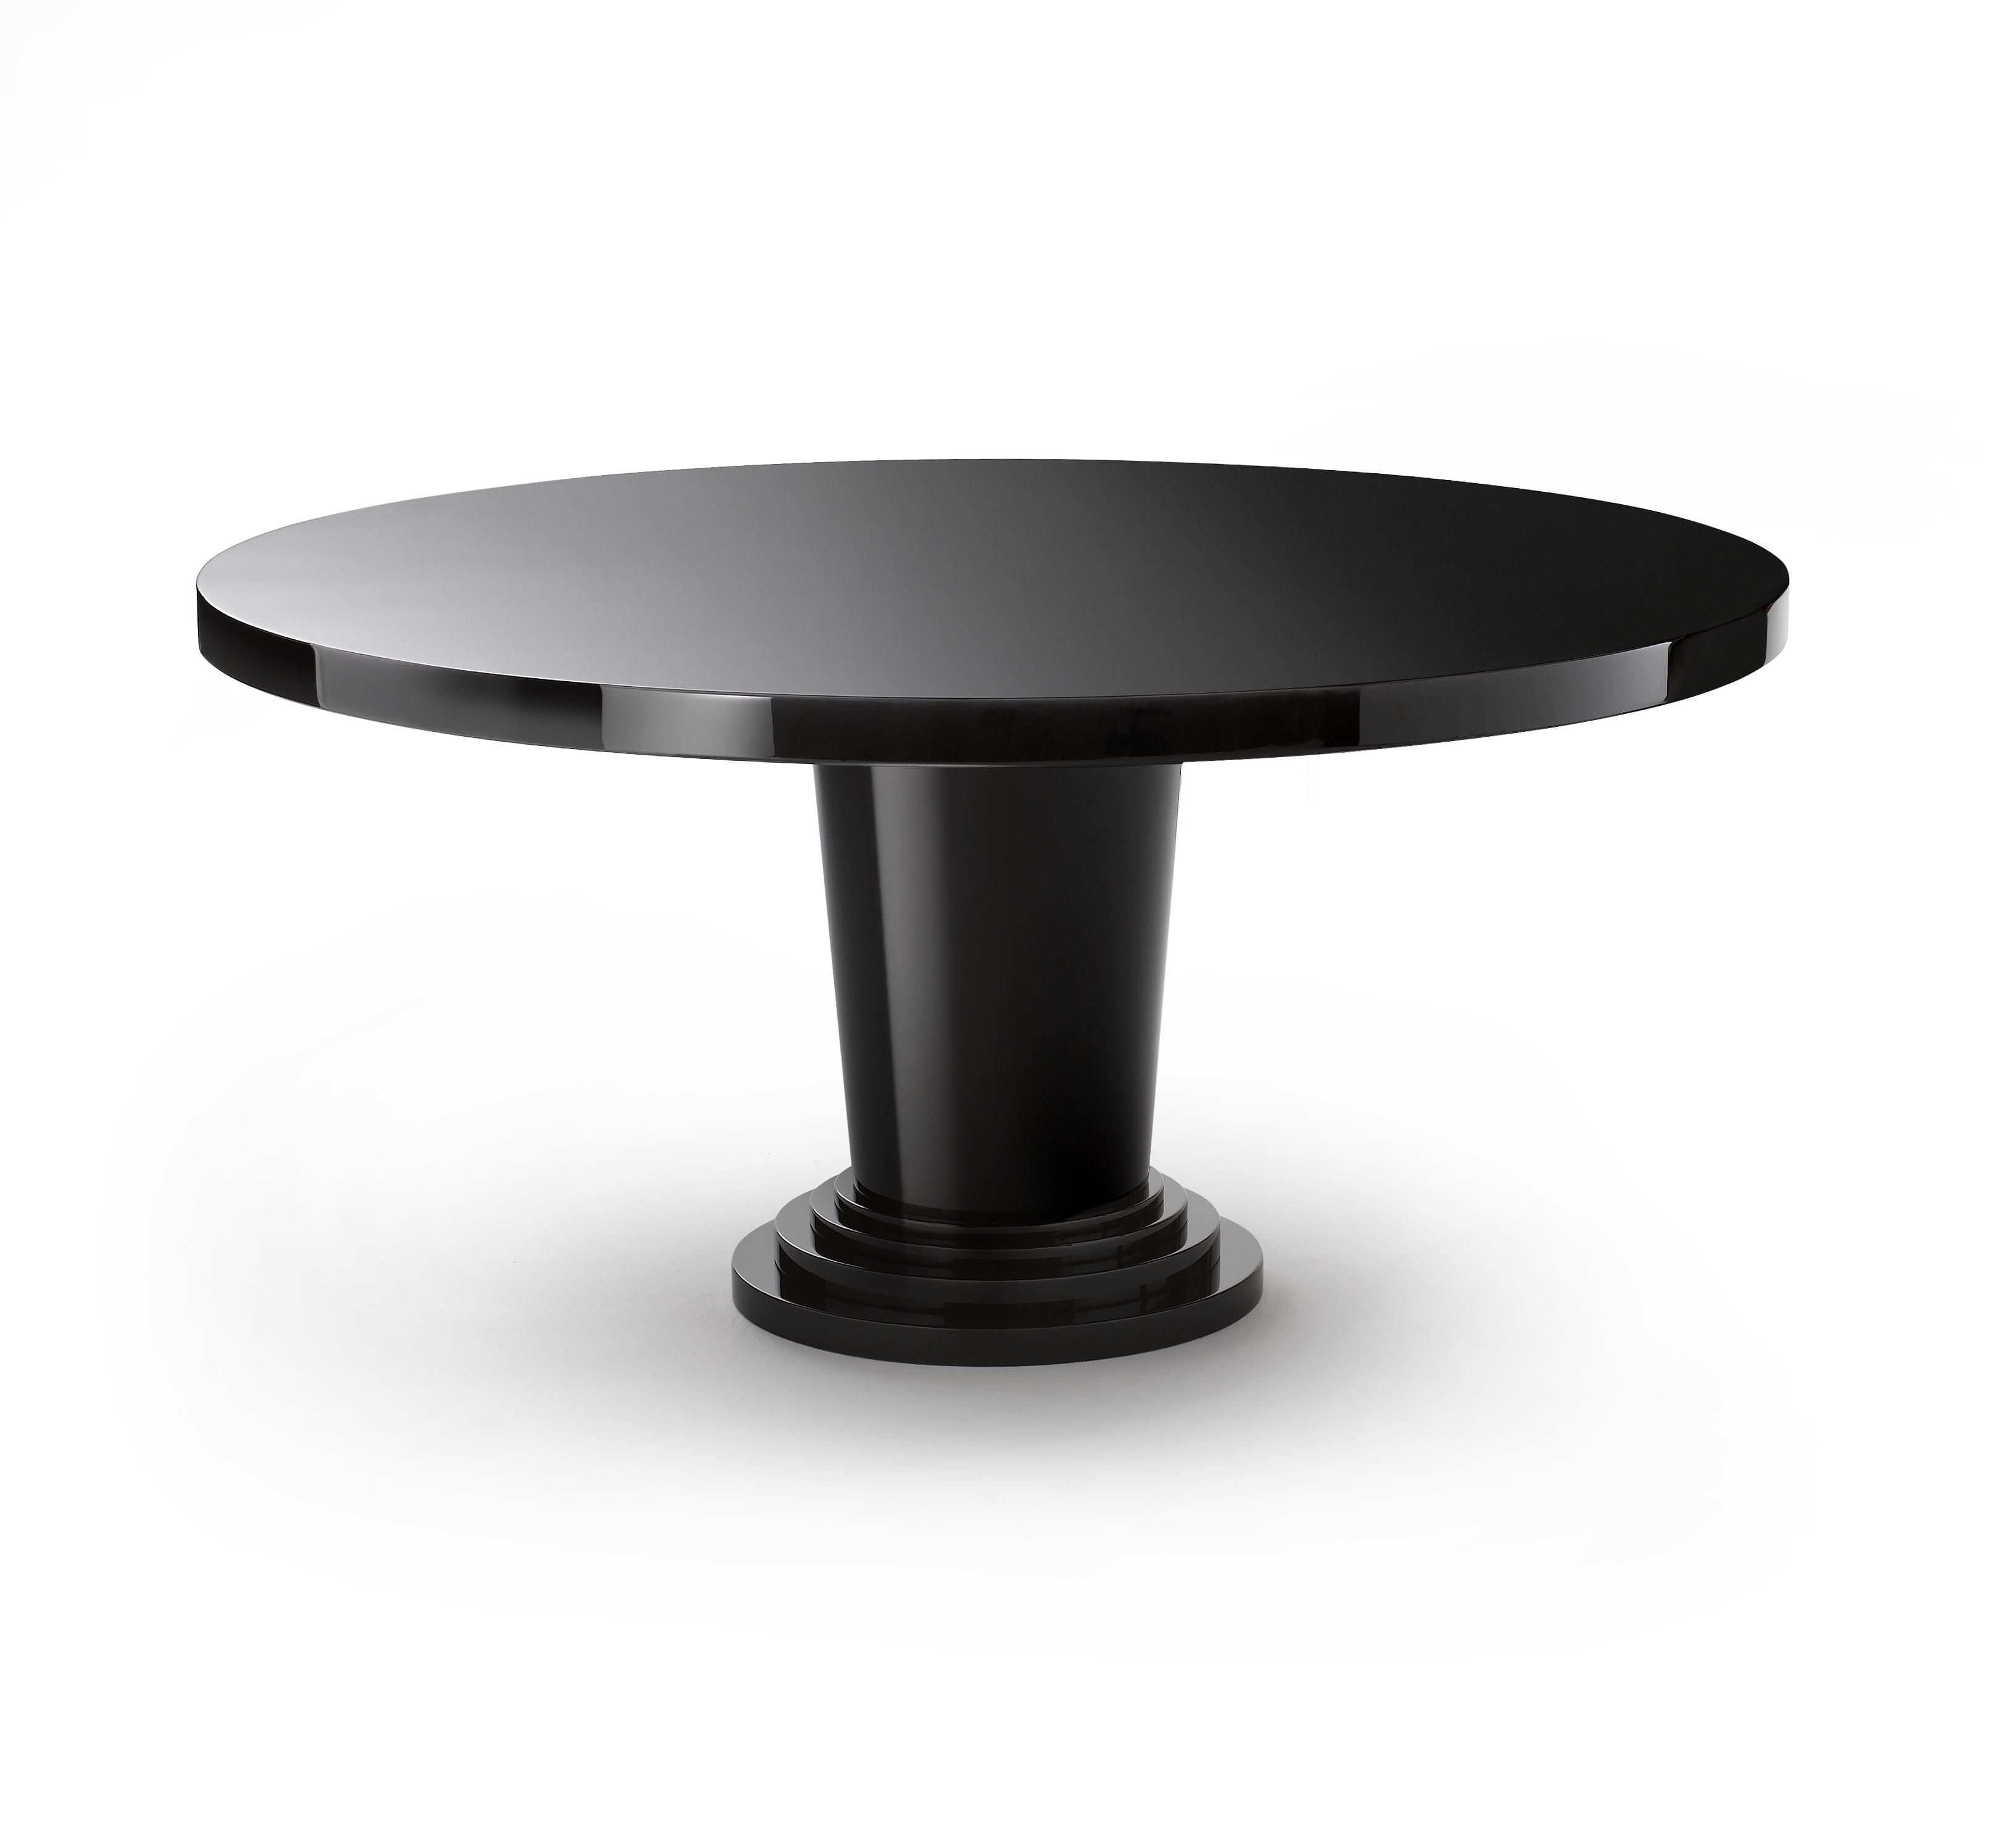 Davidson London The Giggs Table In High Gloss Black Lacquer Furniture Dining Table British Furniture Furniture